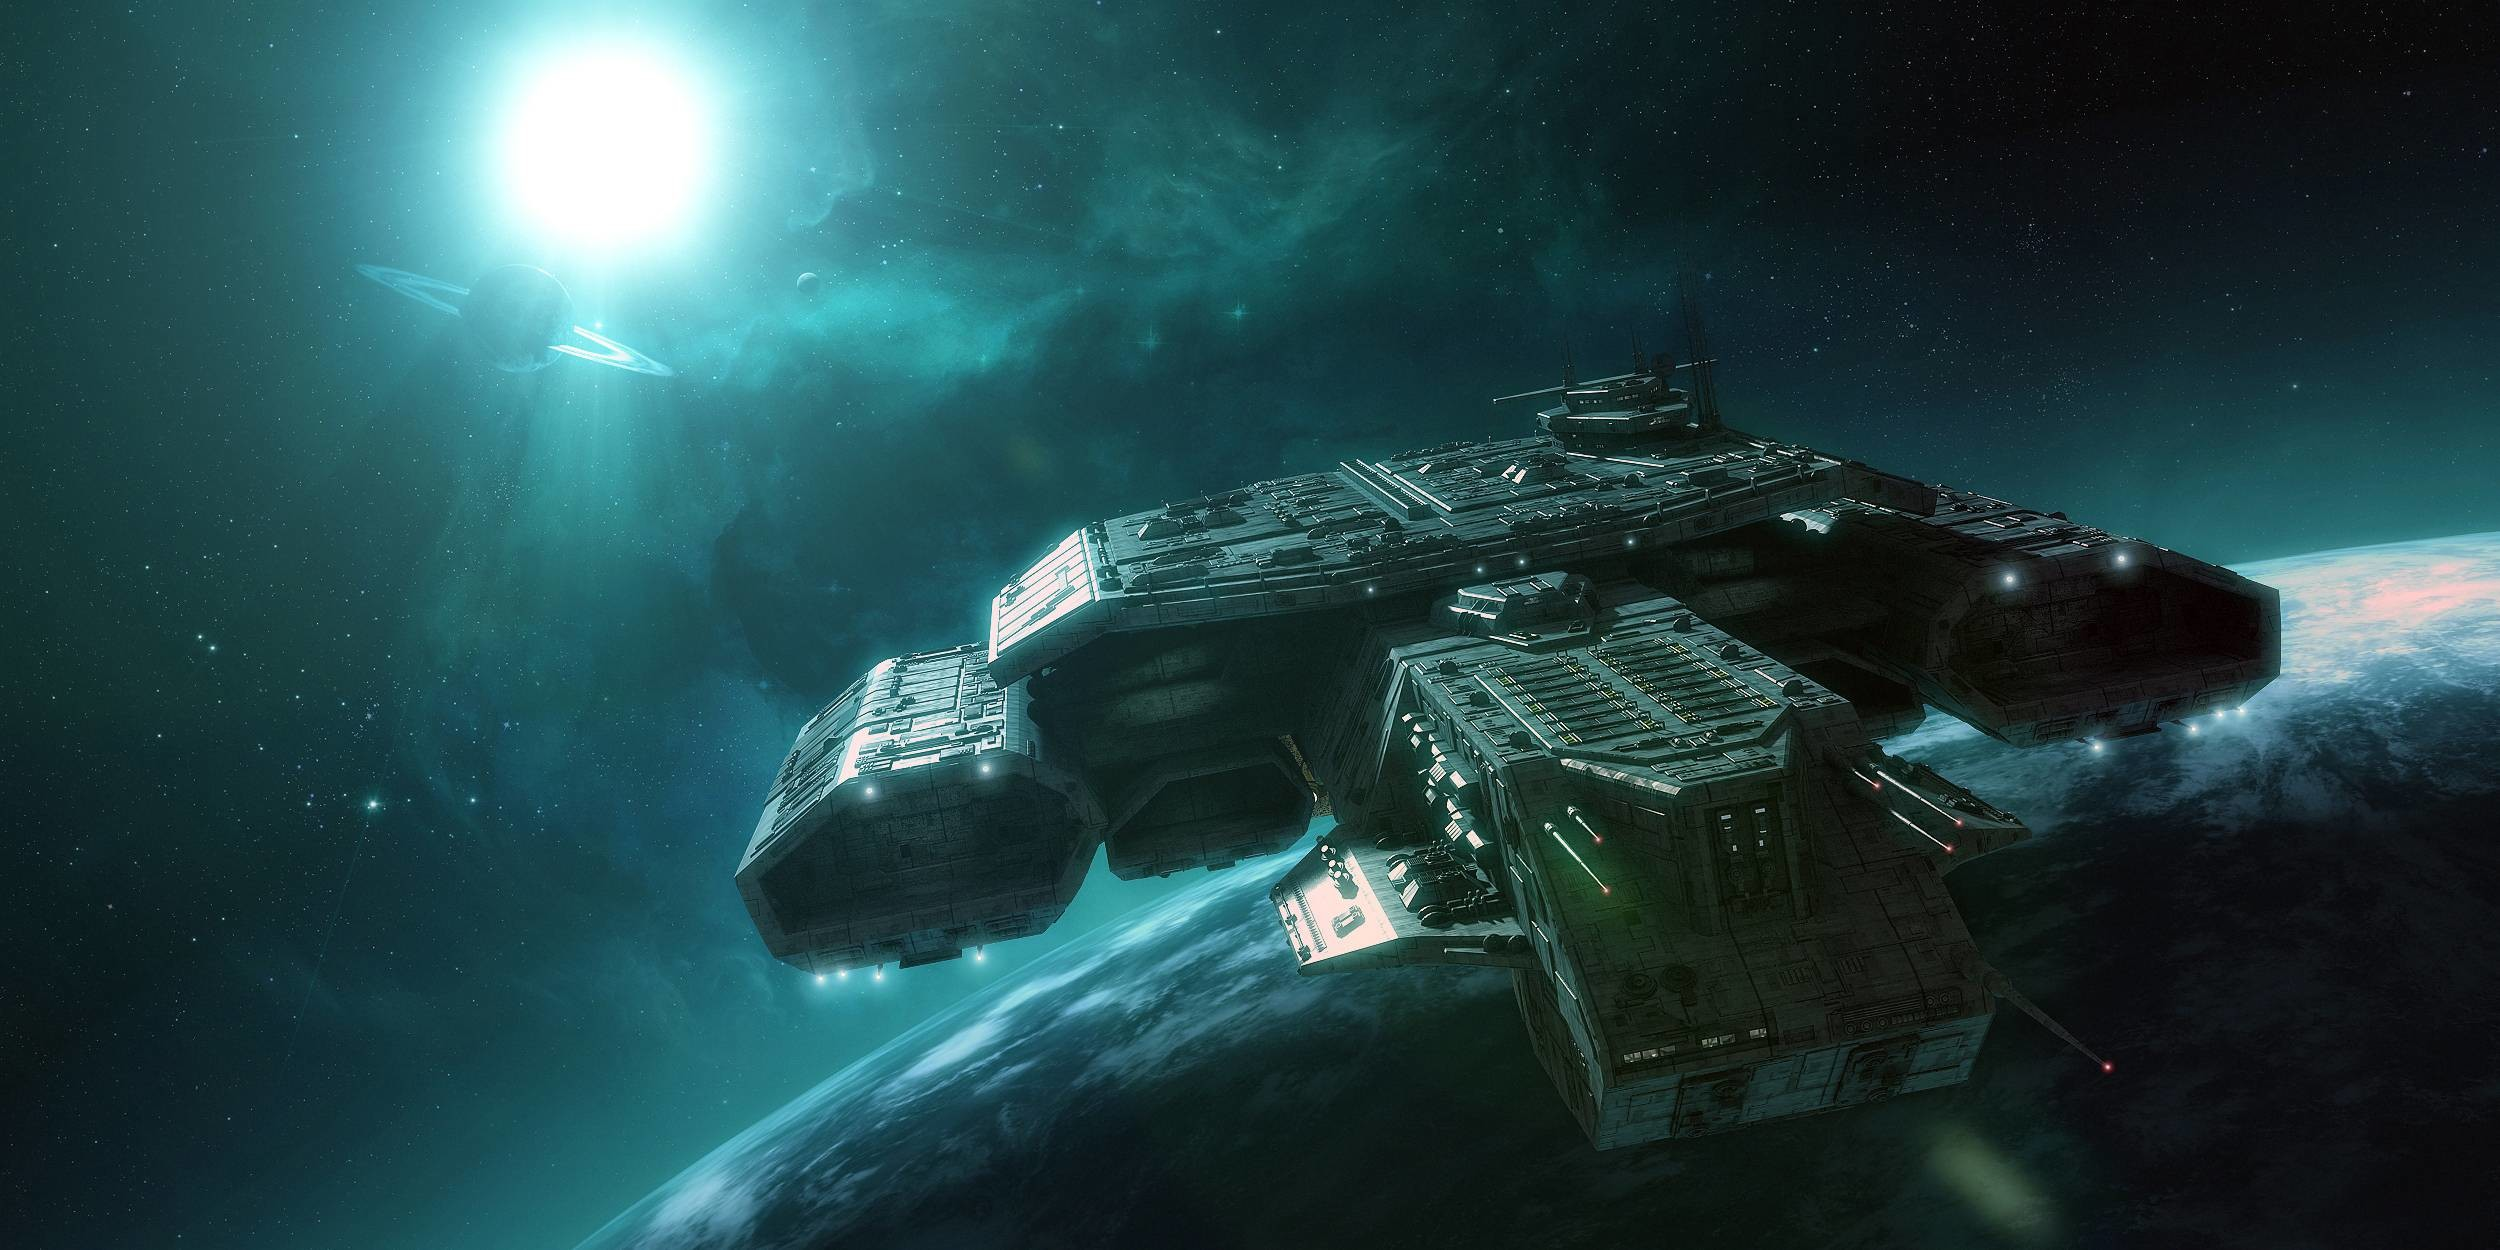 Preview daedalus attack stargate orbit planet amazing background